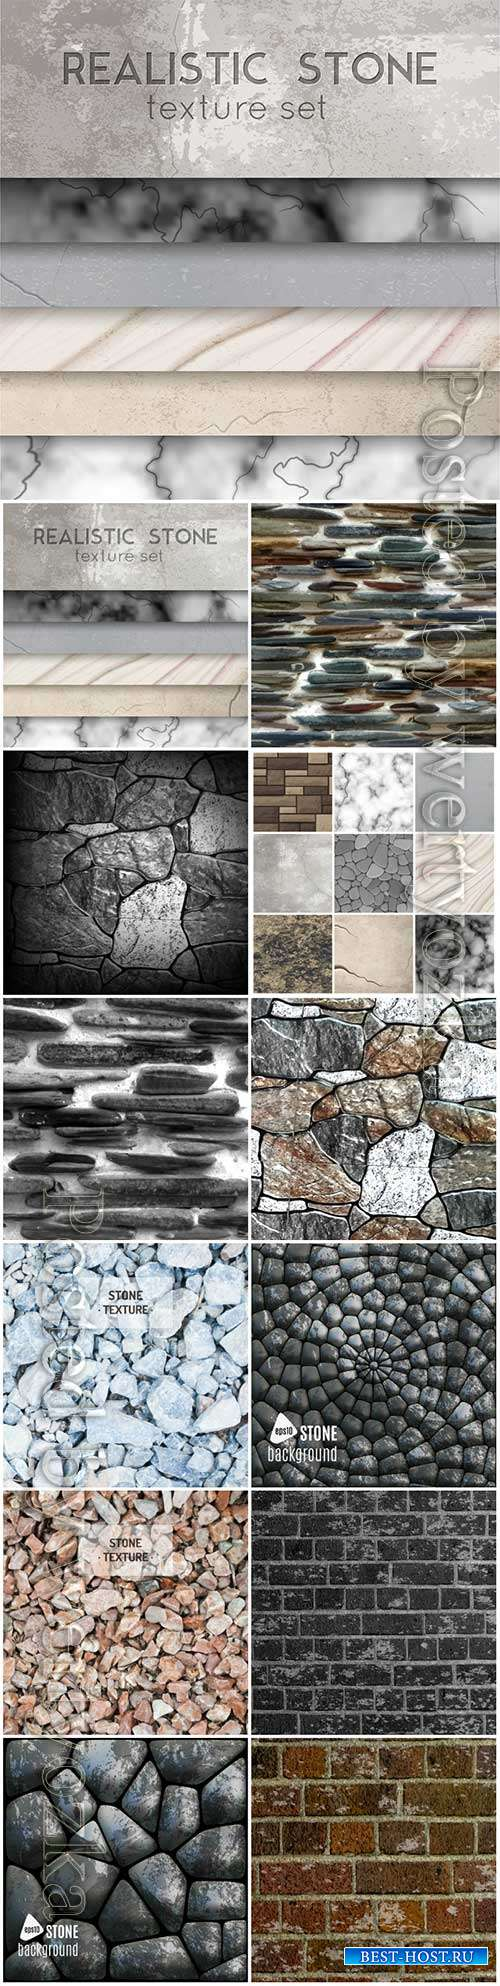 Realistic stone texture patterns collection